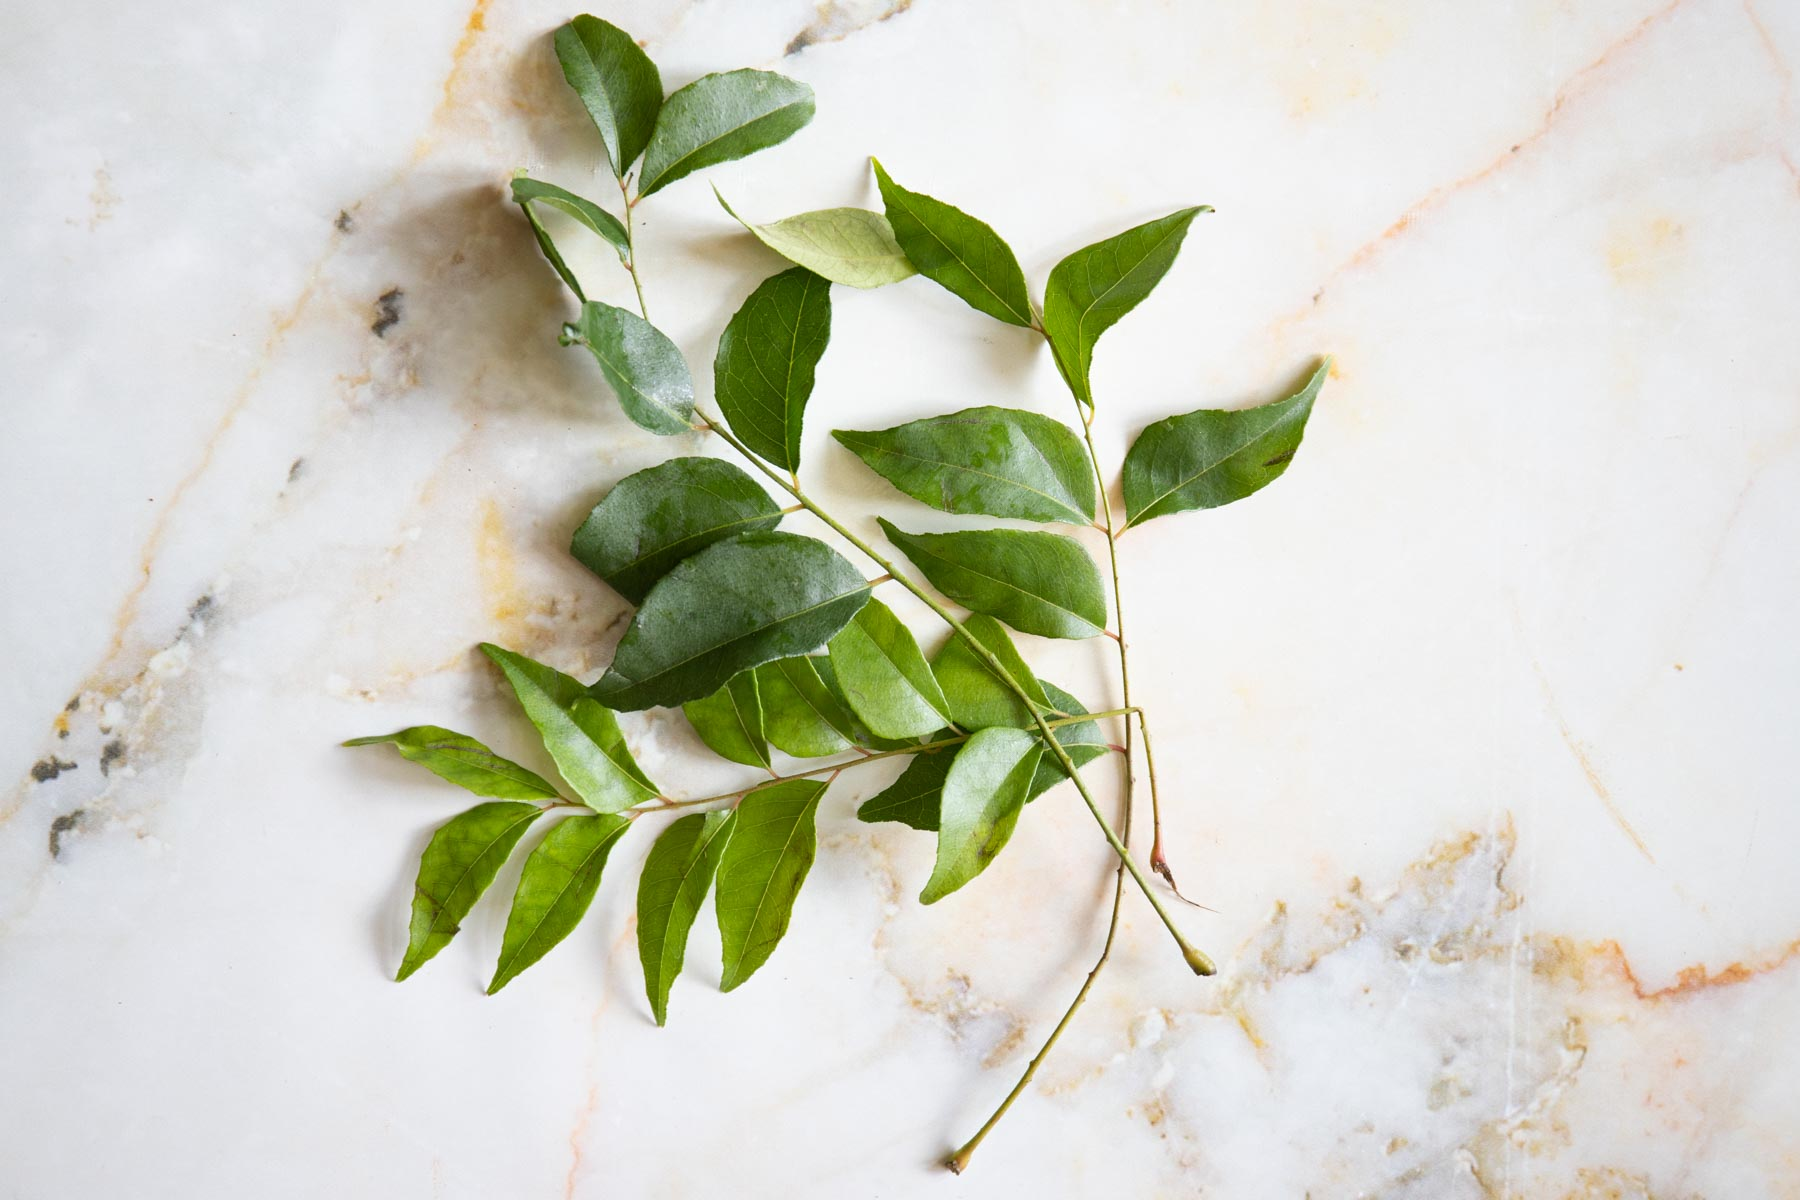 curry leaf on the table